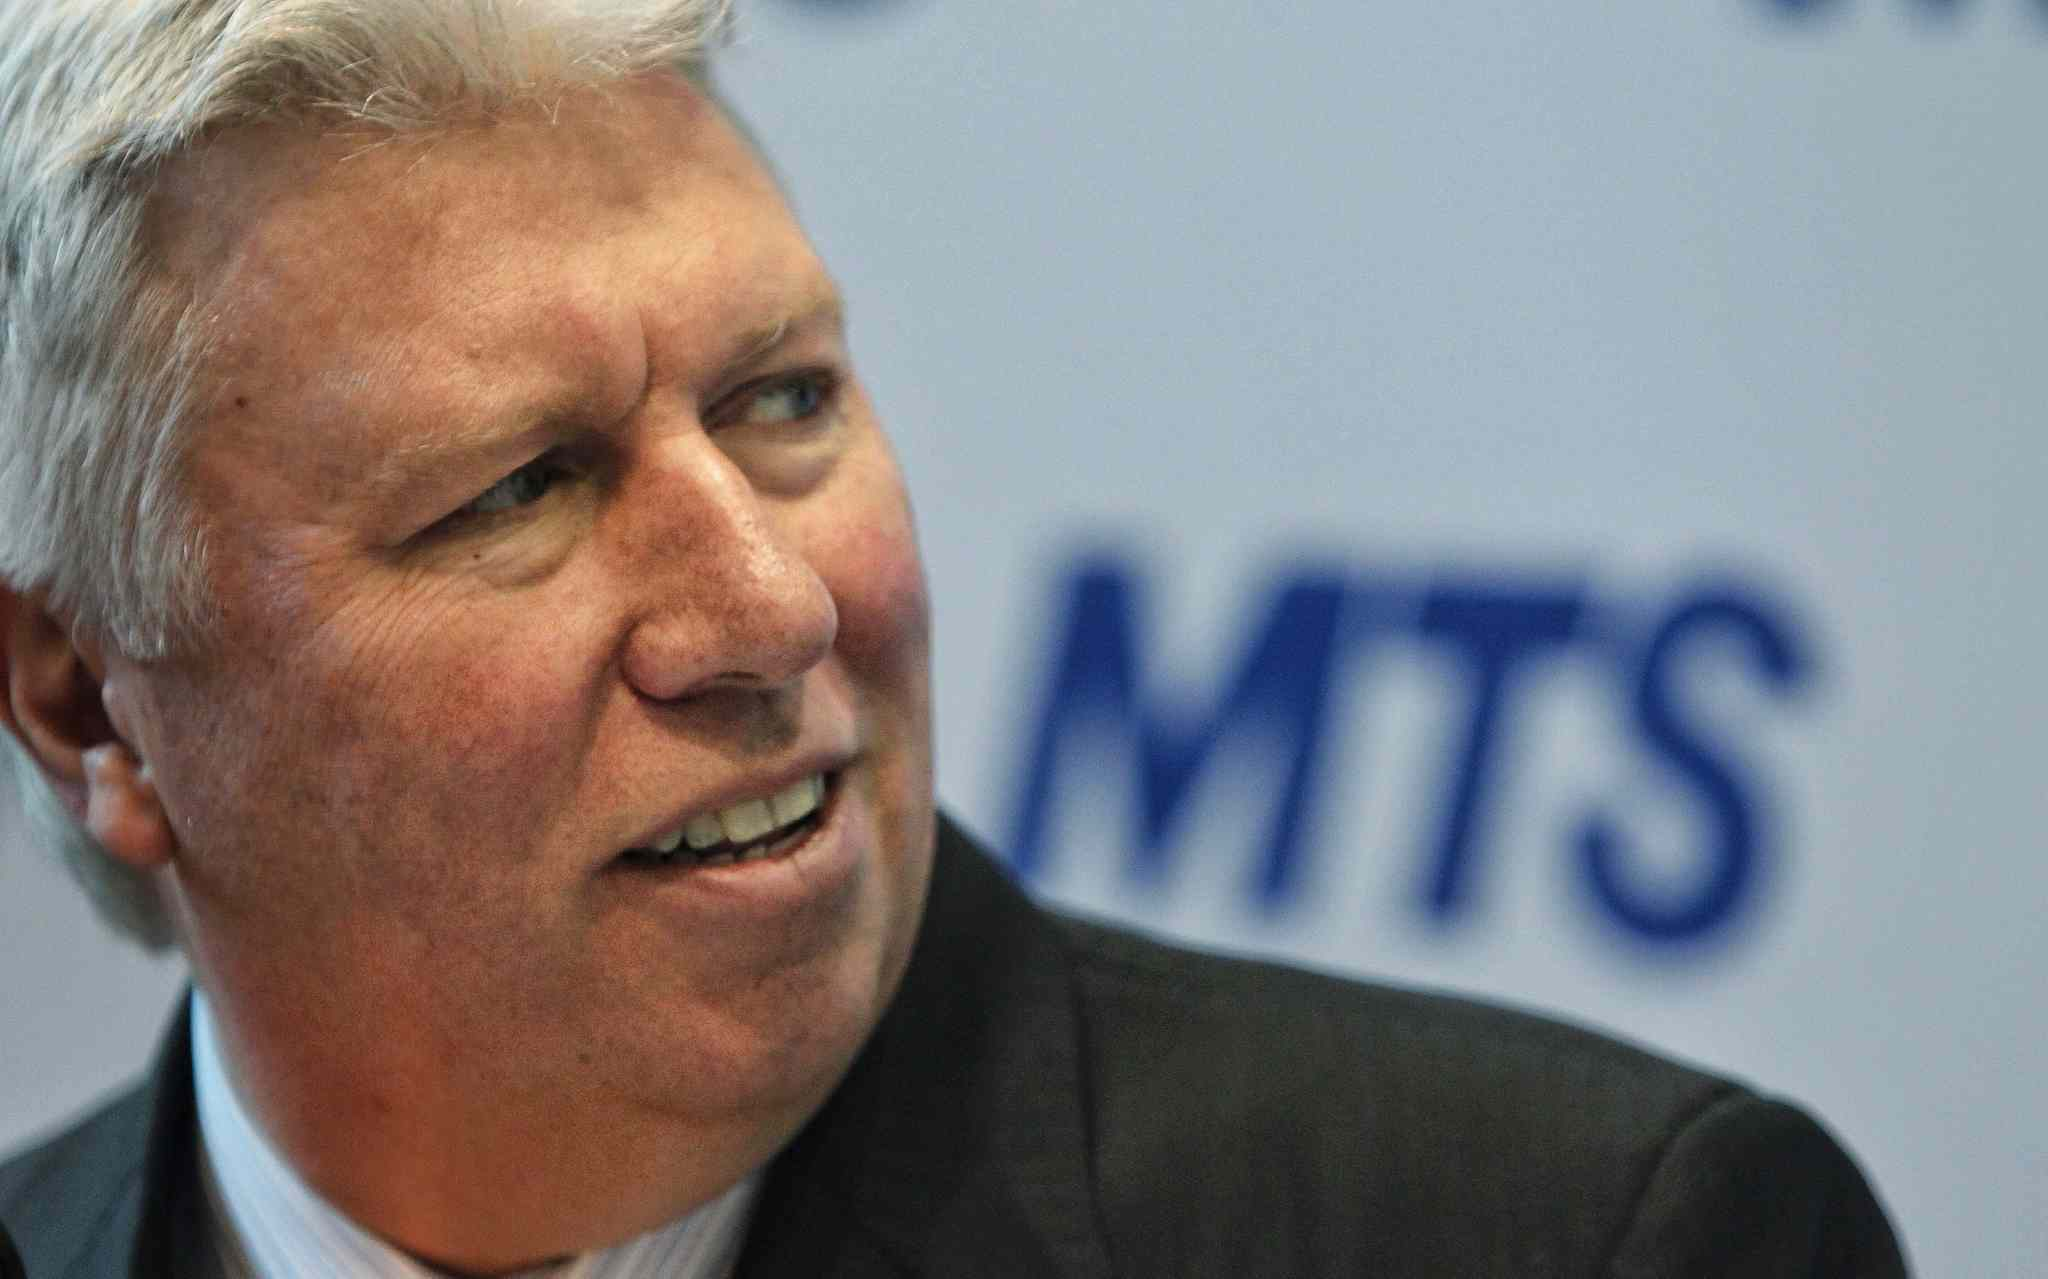 Pierre Blouin will remain as CEO of MTS Allstream until his replacement has been found.